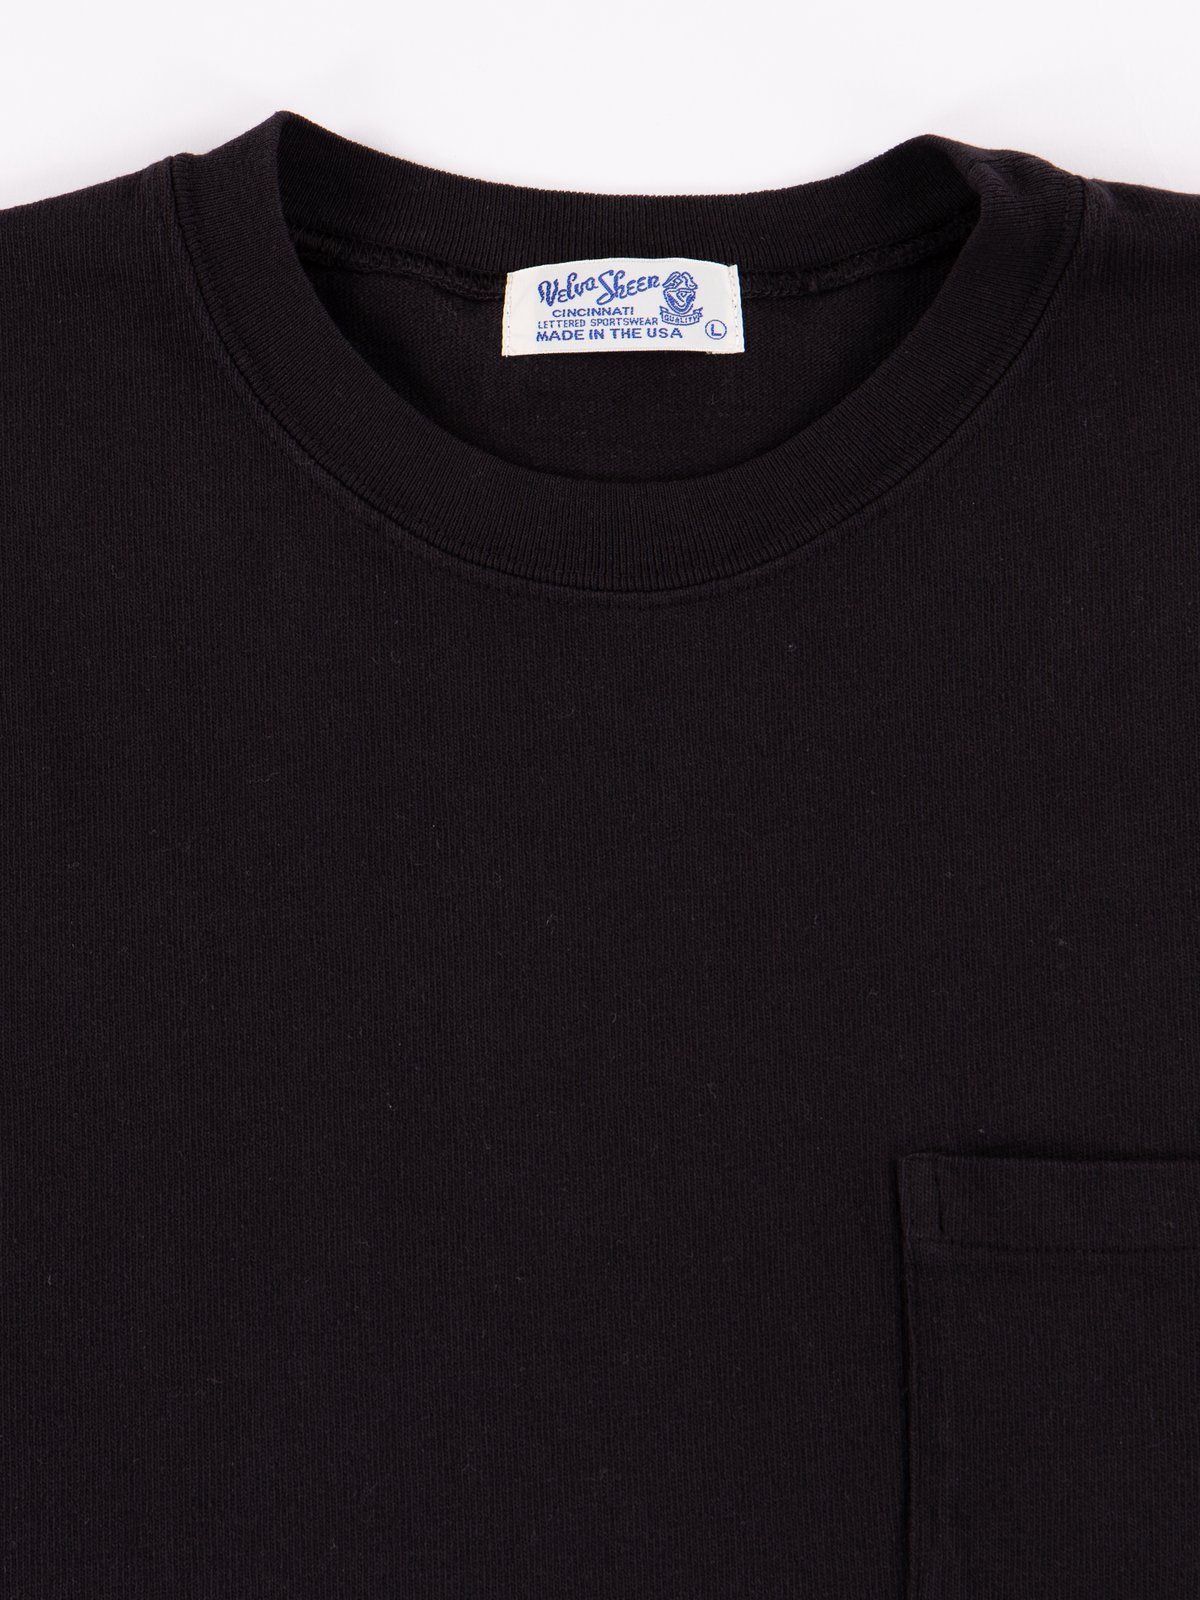 Black Heavy Oz Pocket Tee - Image 2